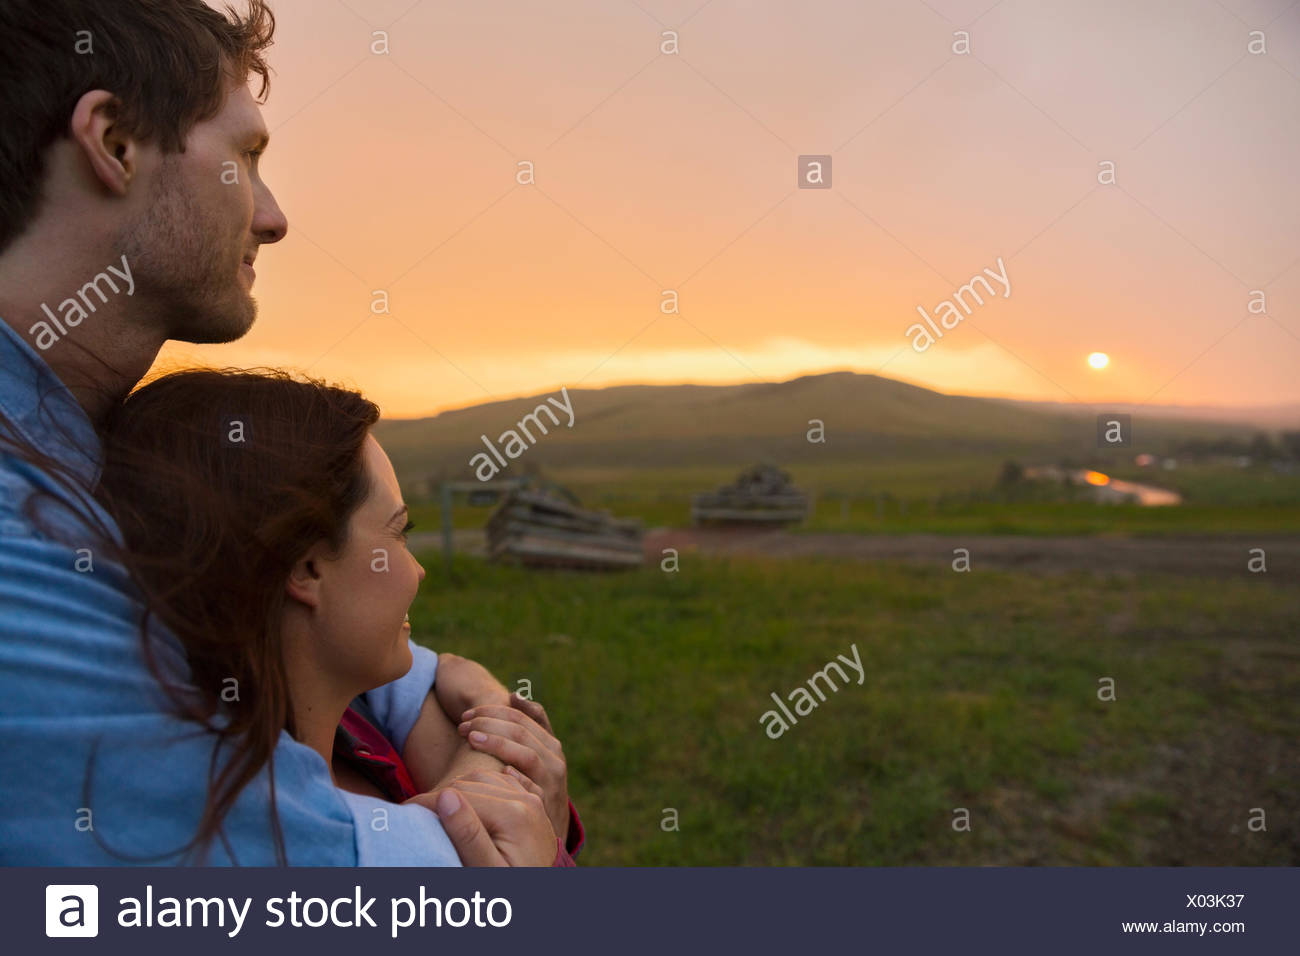 Serene couple watching sunset over rural field - Stock Image